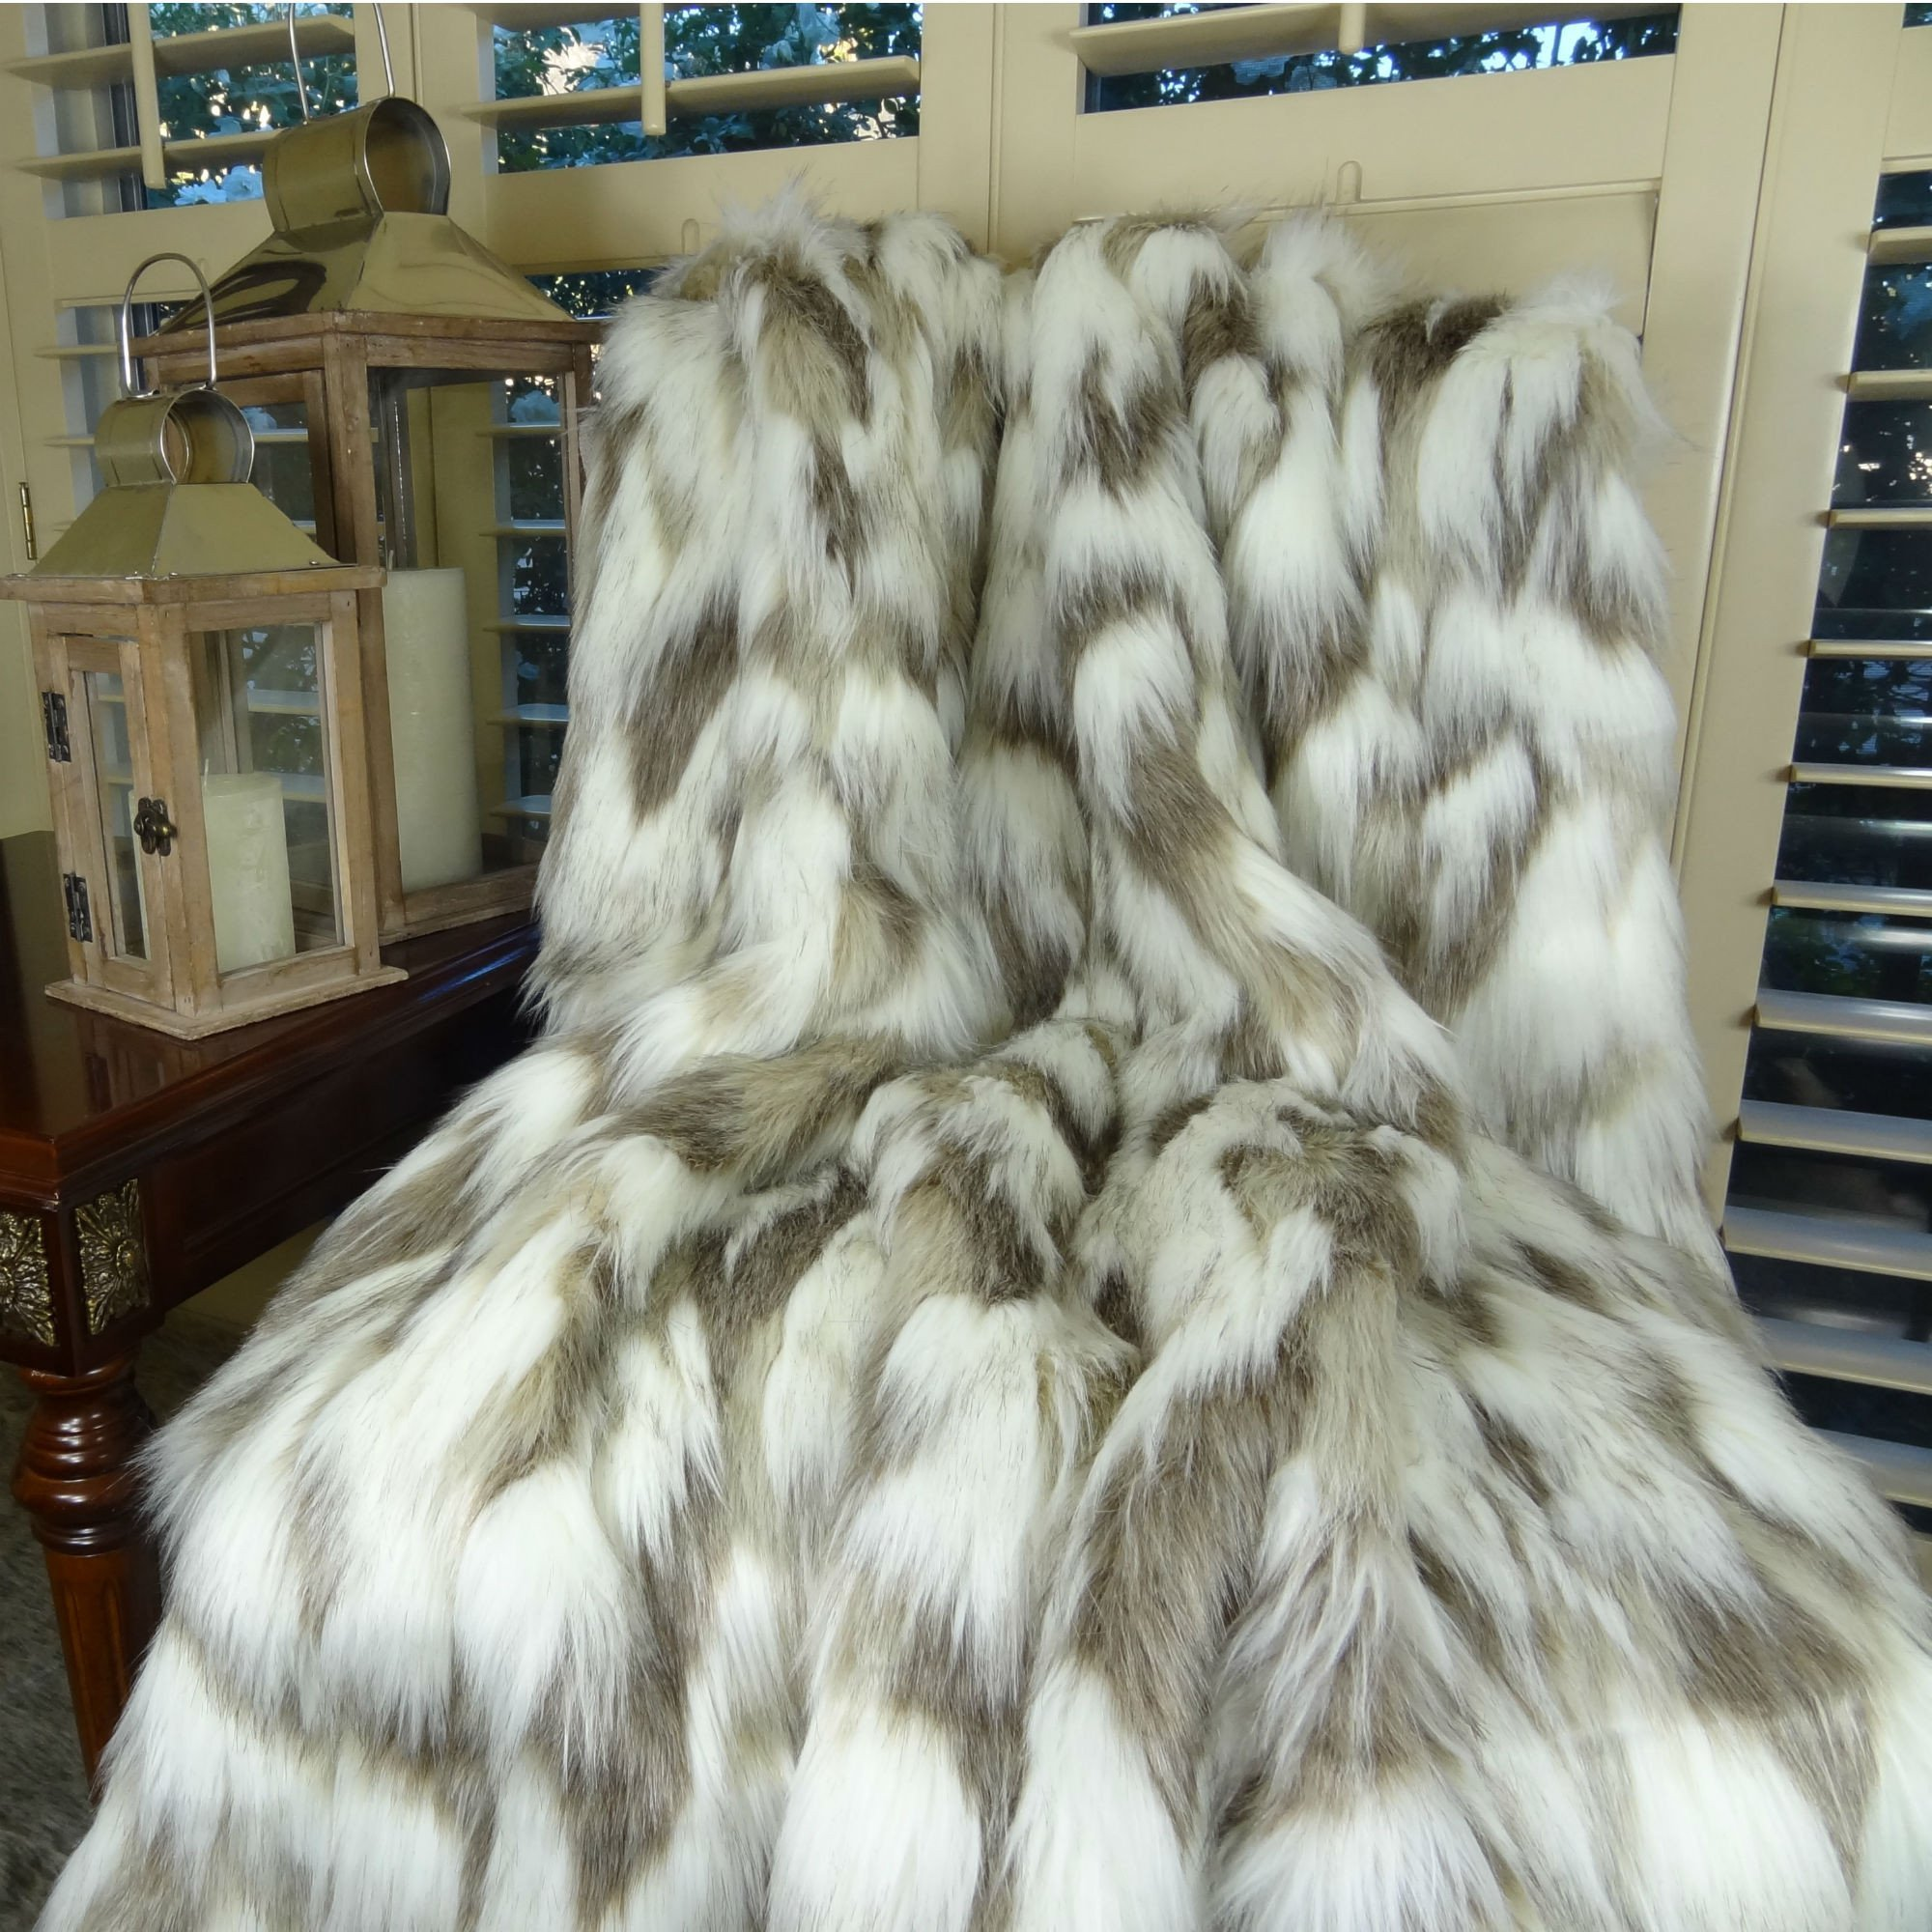 Thomas Collection designer throw blanket, super soft faux fur throw blanket, Ivory Faux Fur Luxury Throw Blanket Bedspread, Tibet Fox Fur Ivory Beige Designer Faux Fur, Made in America, 16445 by Thomas Collection